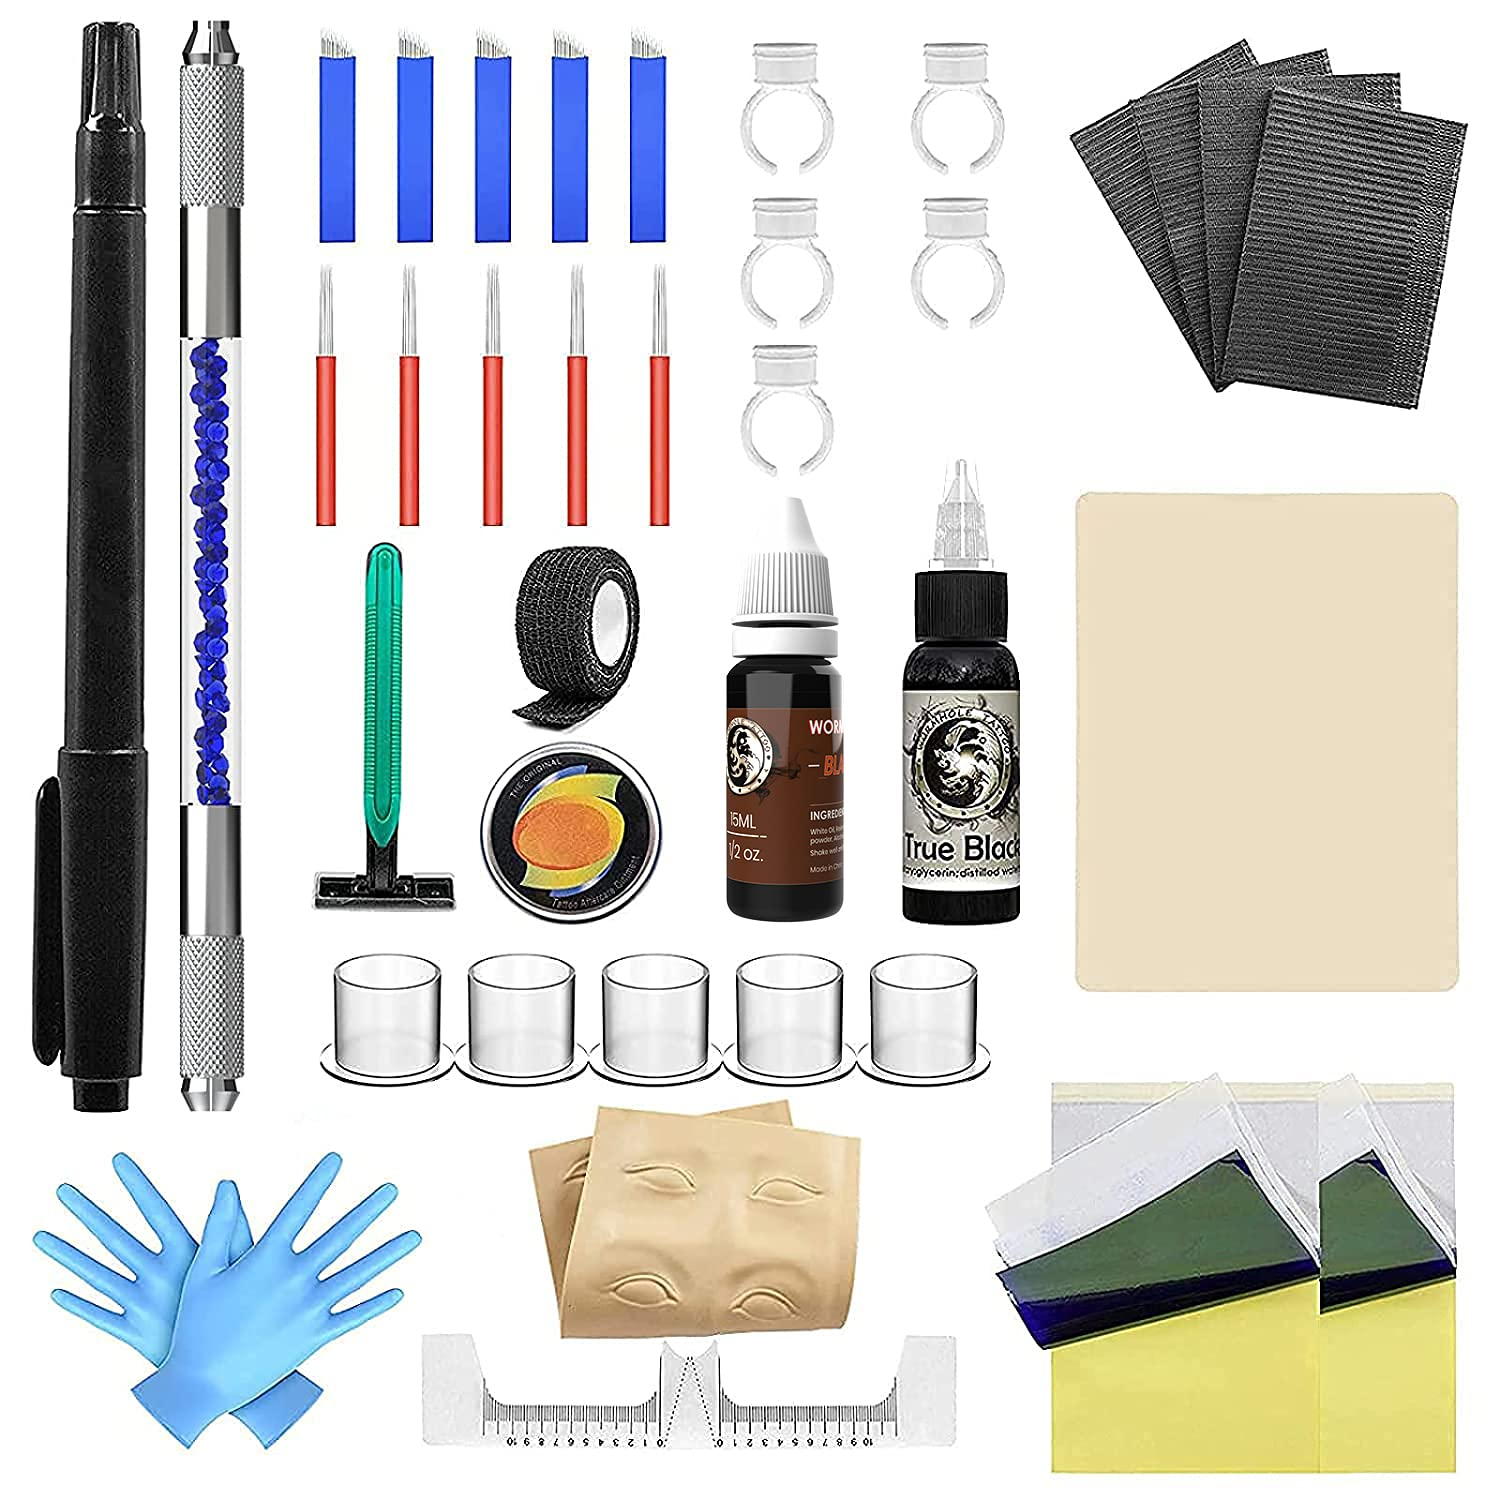 Wormhole Tattoo Stick and Poke Kit Microblading Kit Tattoo Kit DIY Tattoo Kit Home Tattoo Kit with Ink Microblading Pen for Tattoo Supplies and Eyebrow TK095